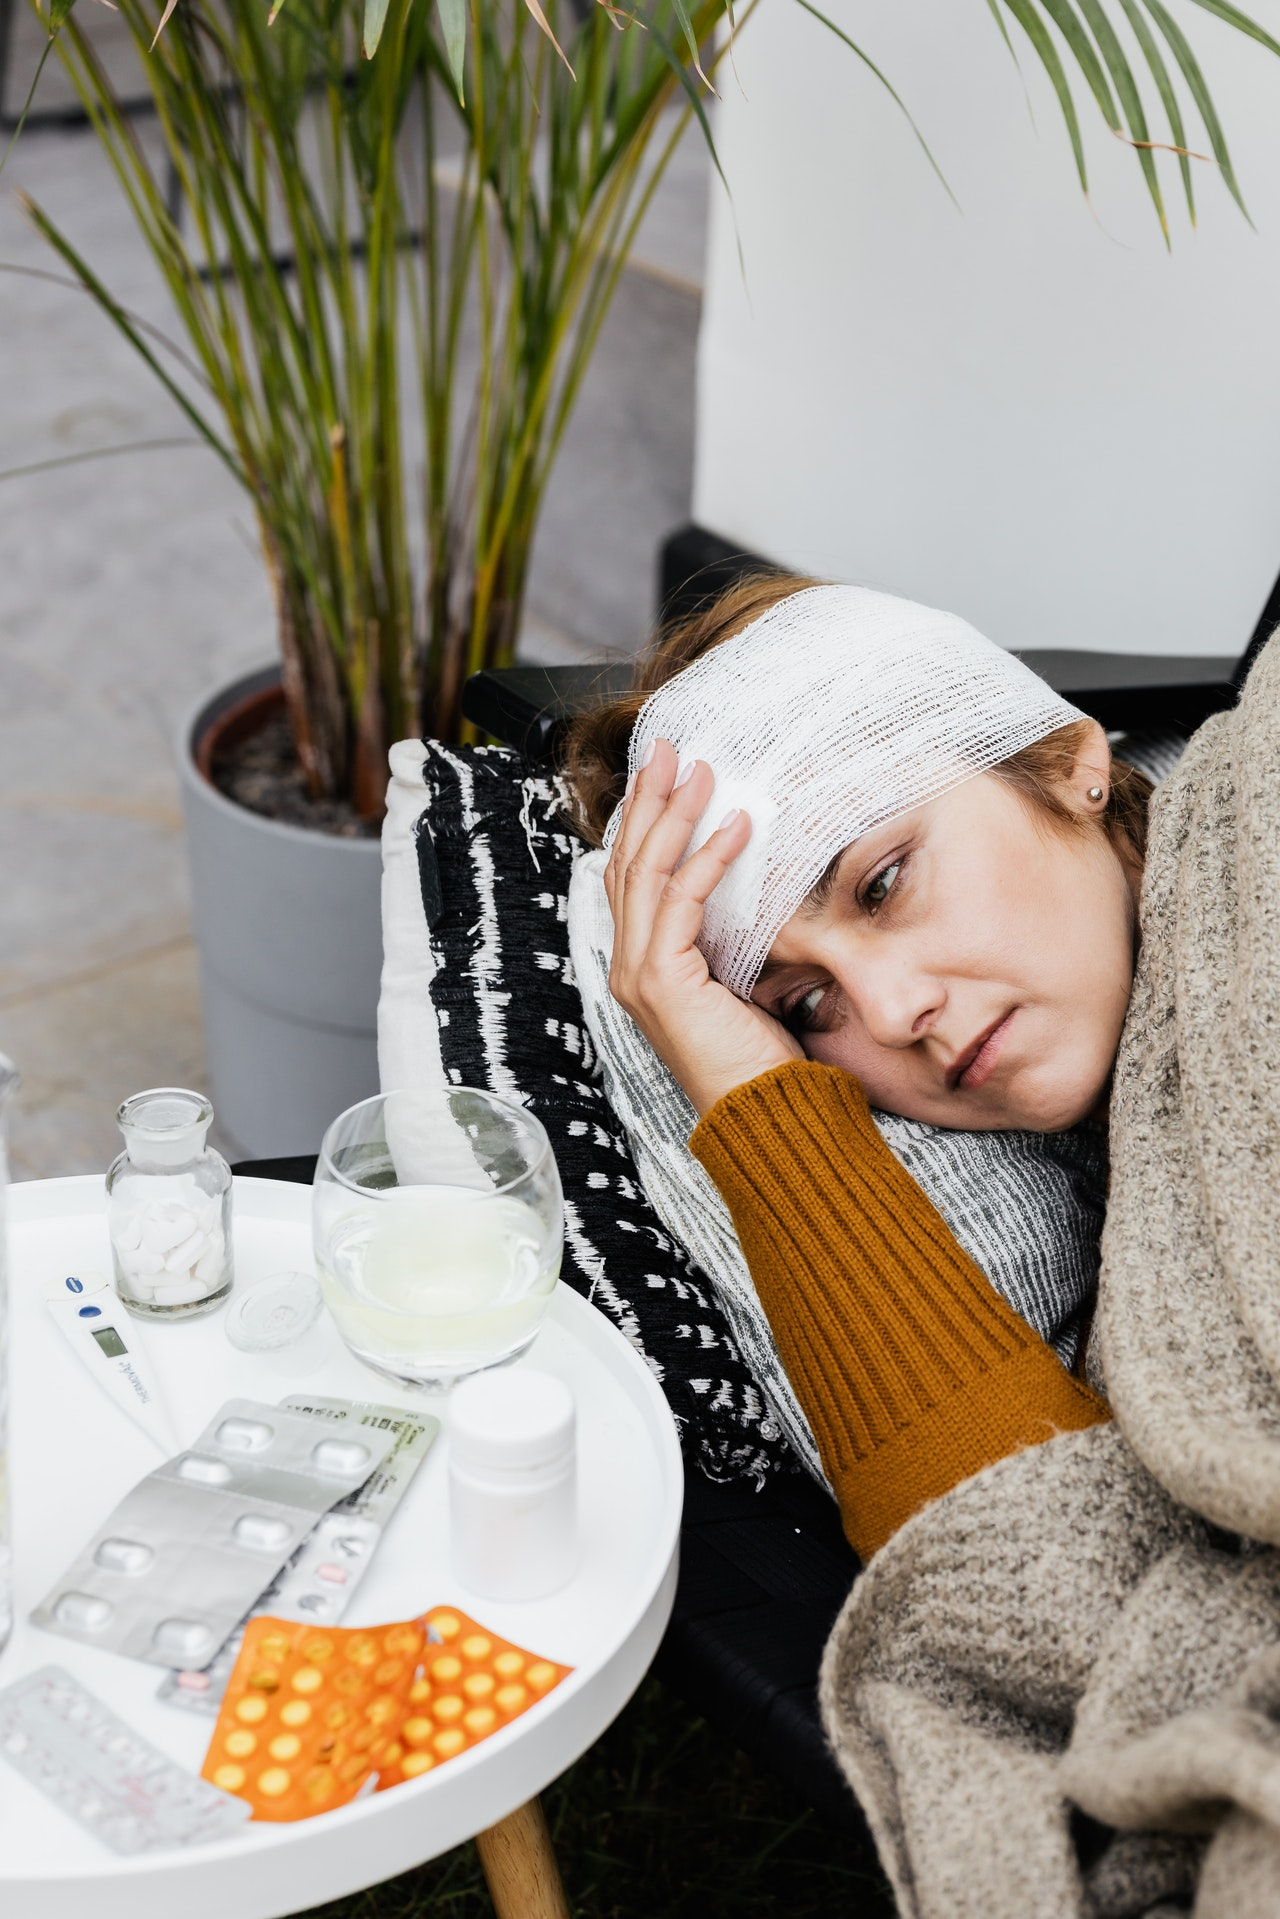 How_to_take_care_of_a_sick_family_member